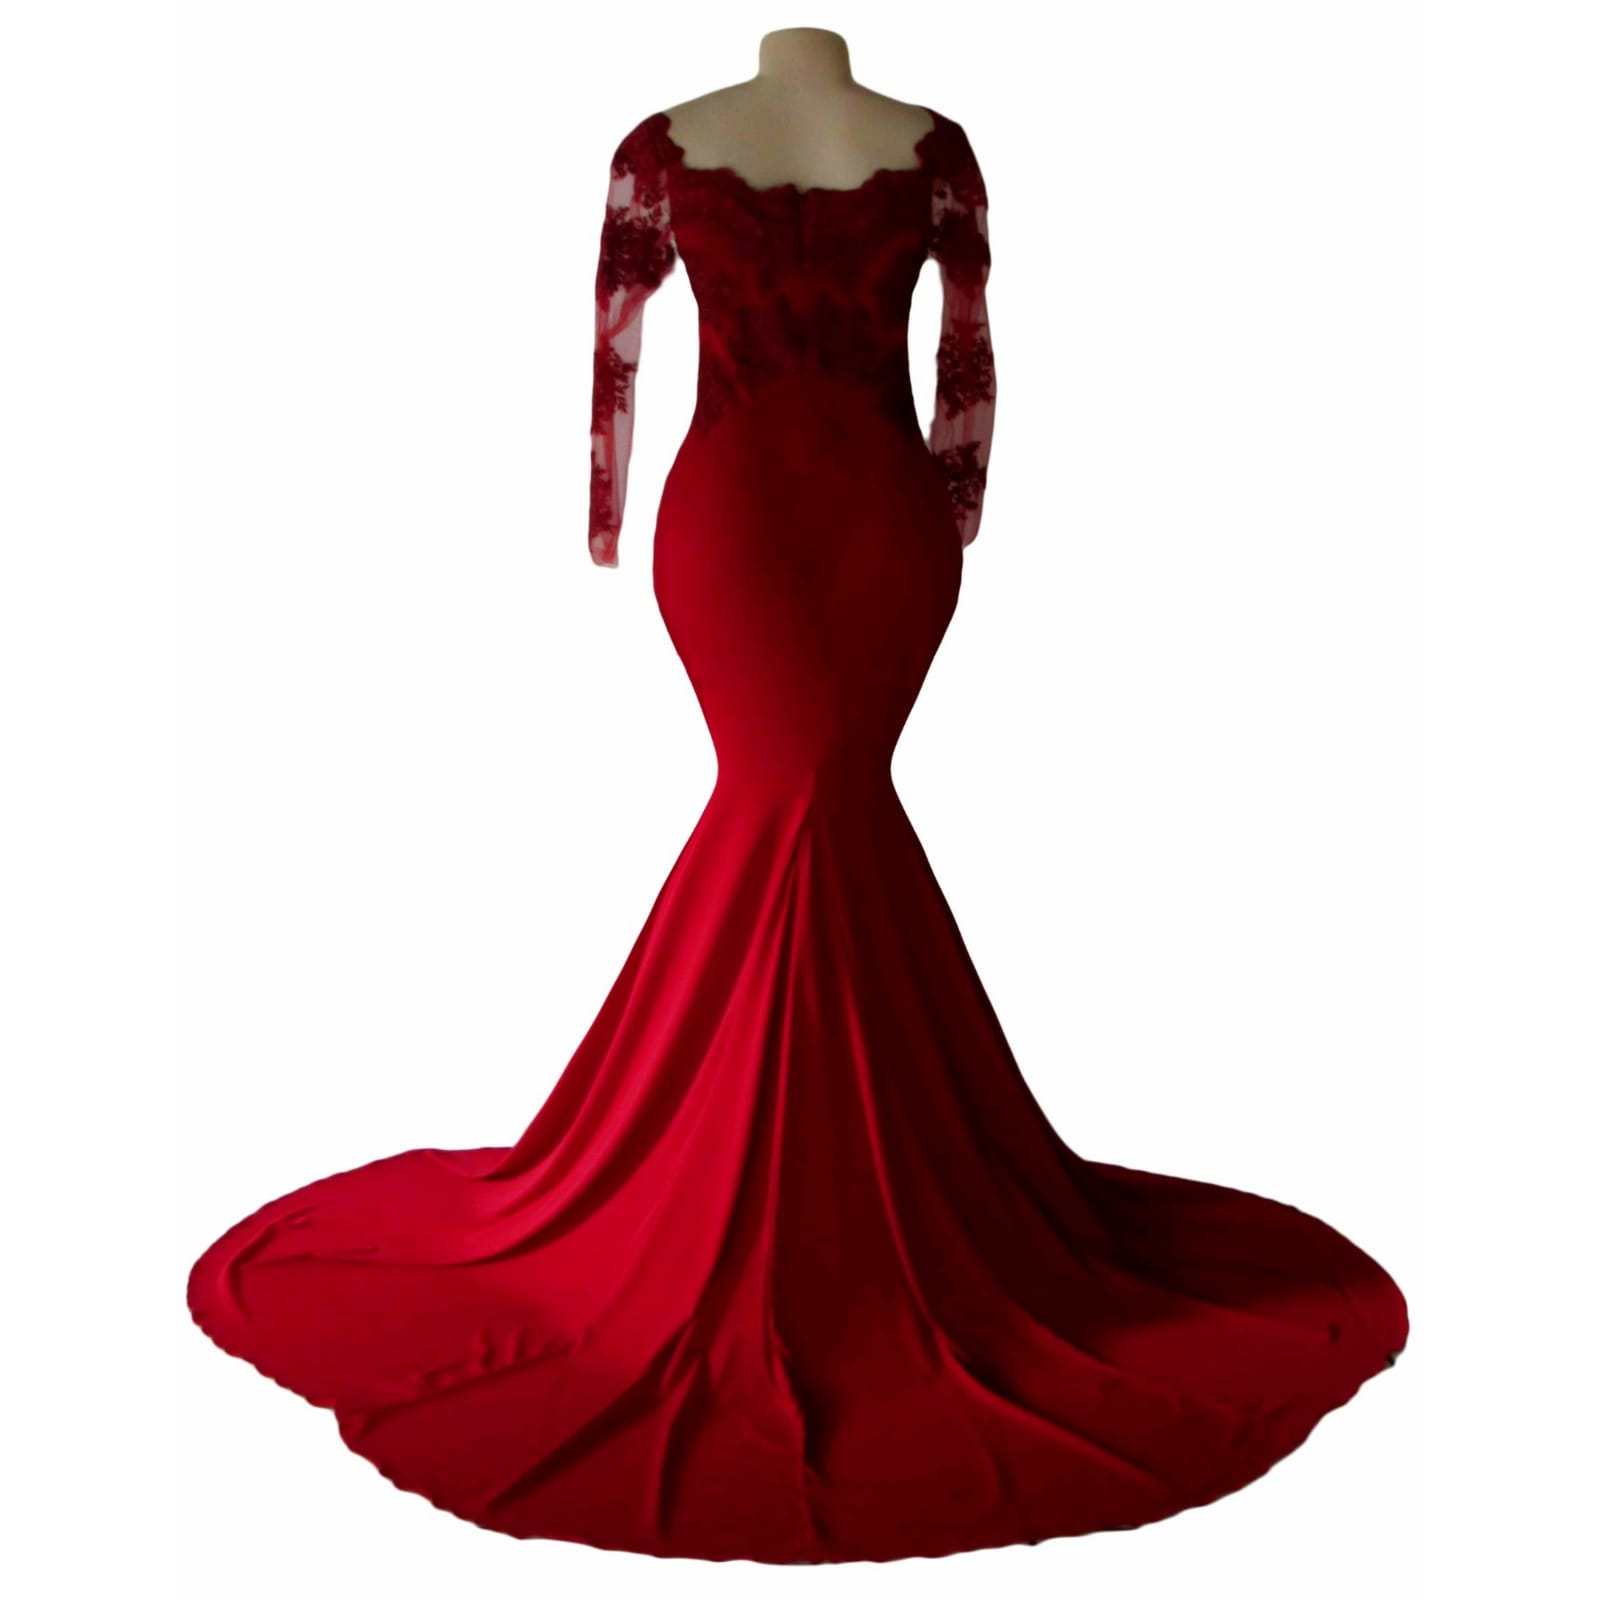 Off shoulder deep red soft mermaid prom dress 4 off shoulder deep red soft mermaid prom dress with an illusion long lace sleeves. Bodice detailed with lace and beads. With a train